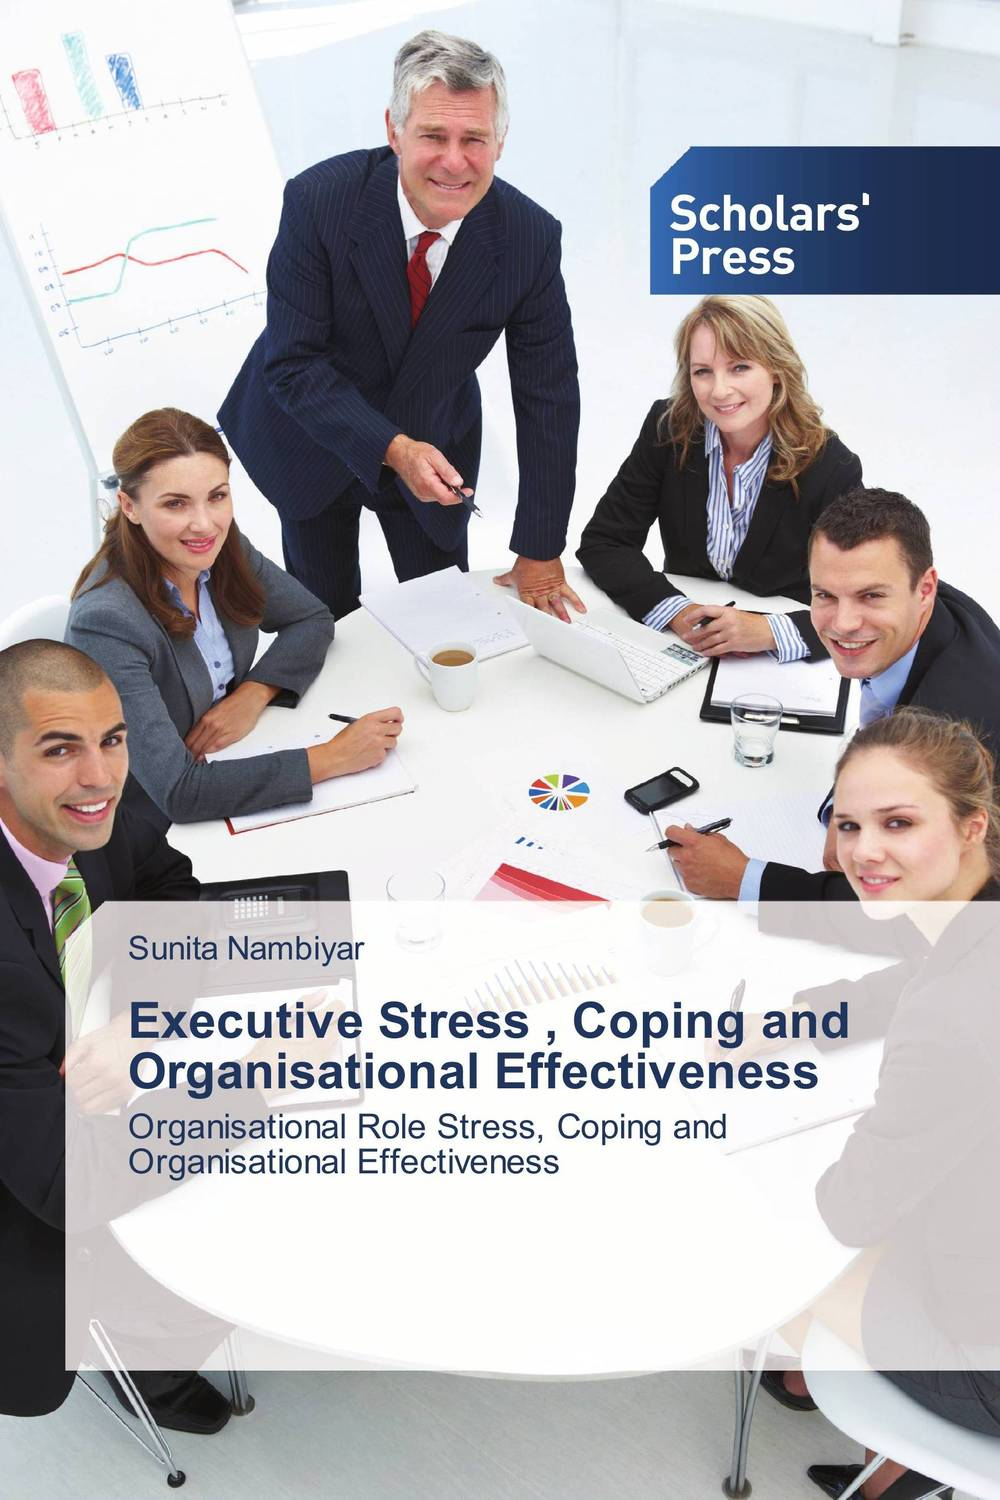 Executive Stress , Coping and Organisational Effectiveness david buckham executive s guide to solvency ii